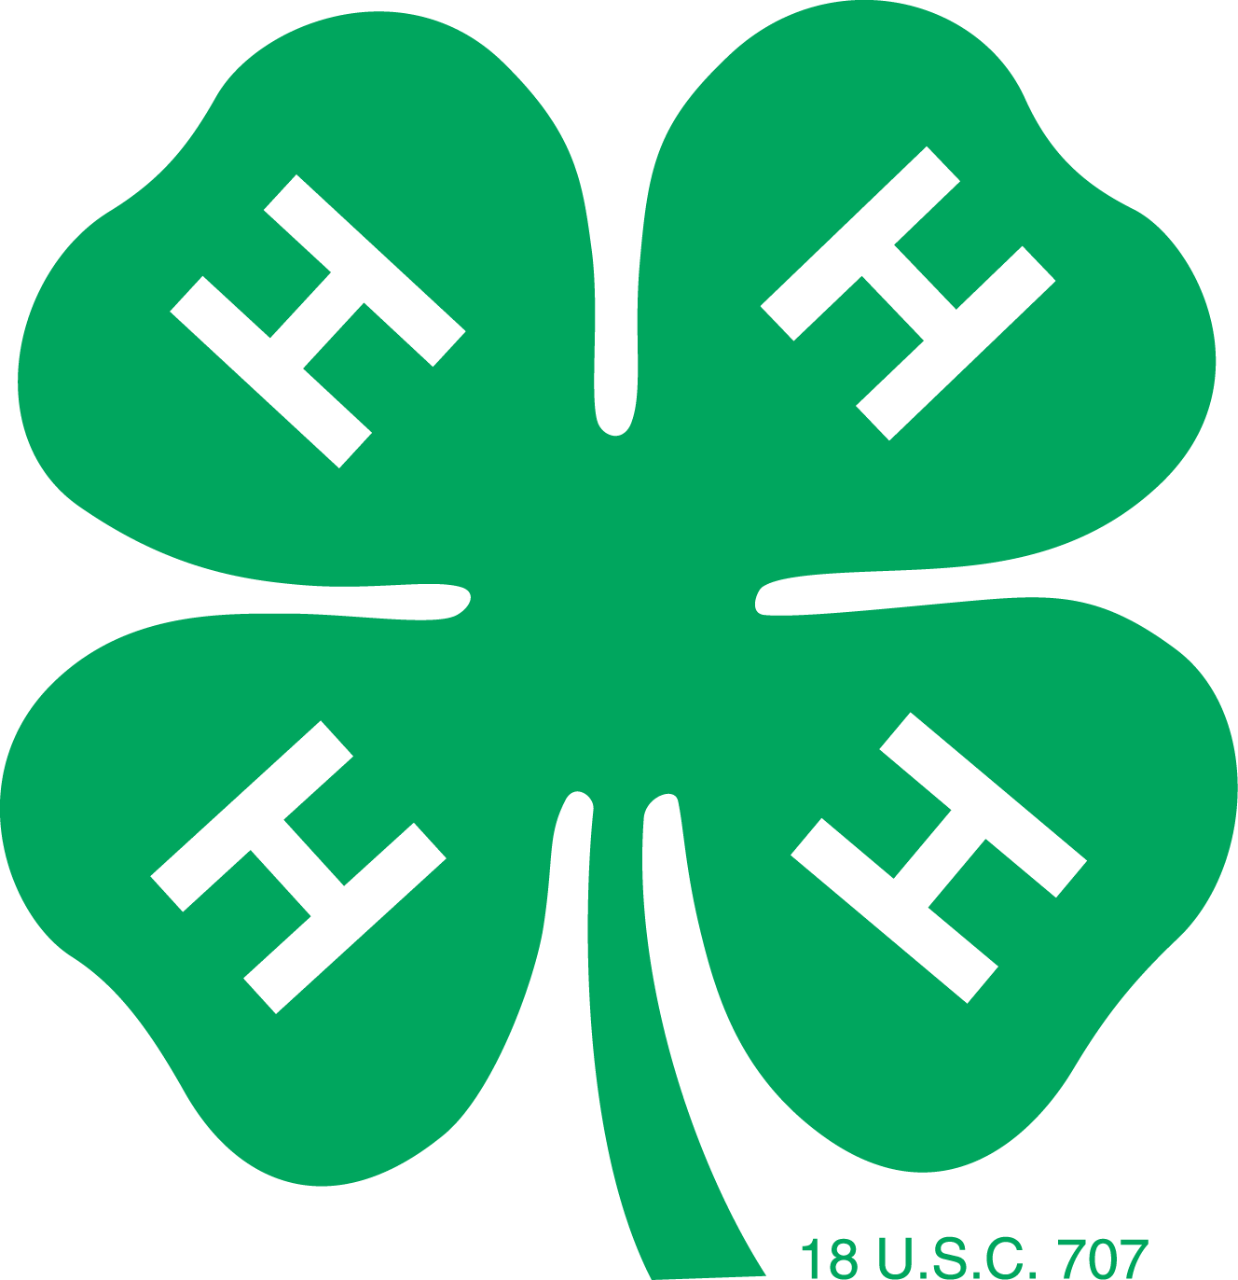 4-H green clover logo with and H on each leaf.